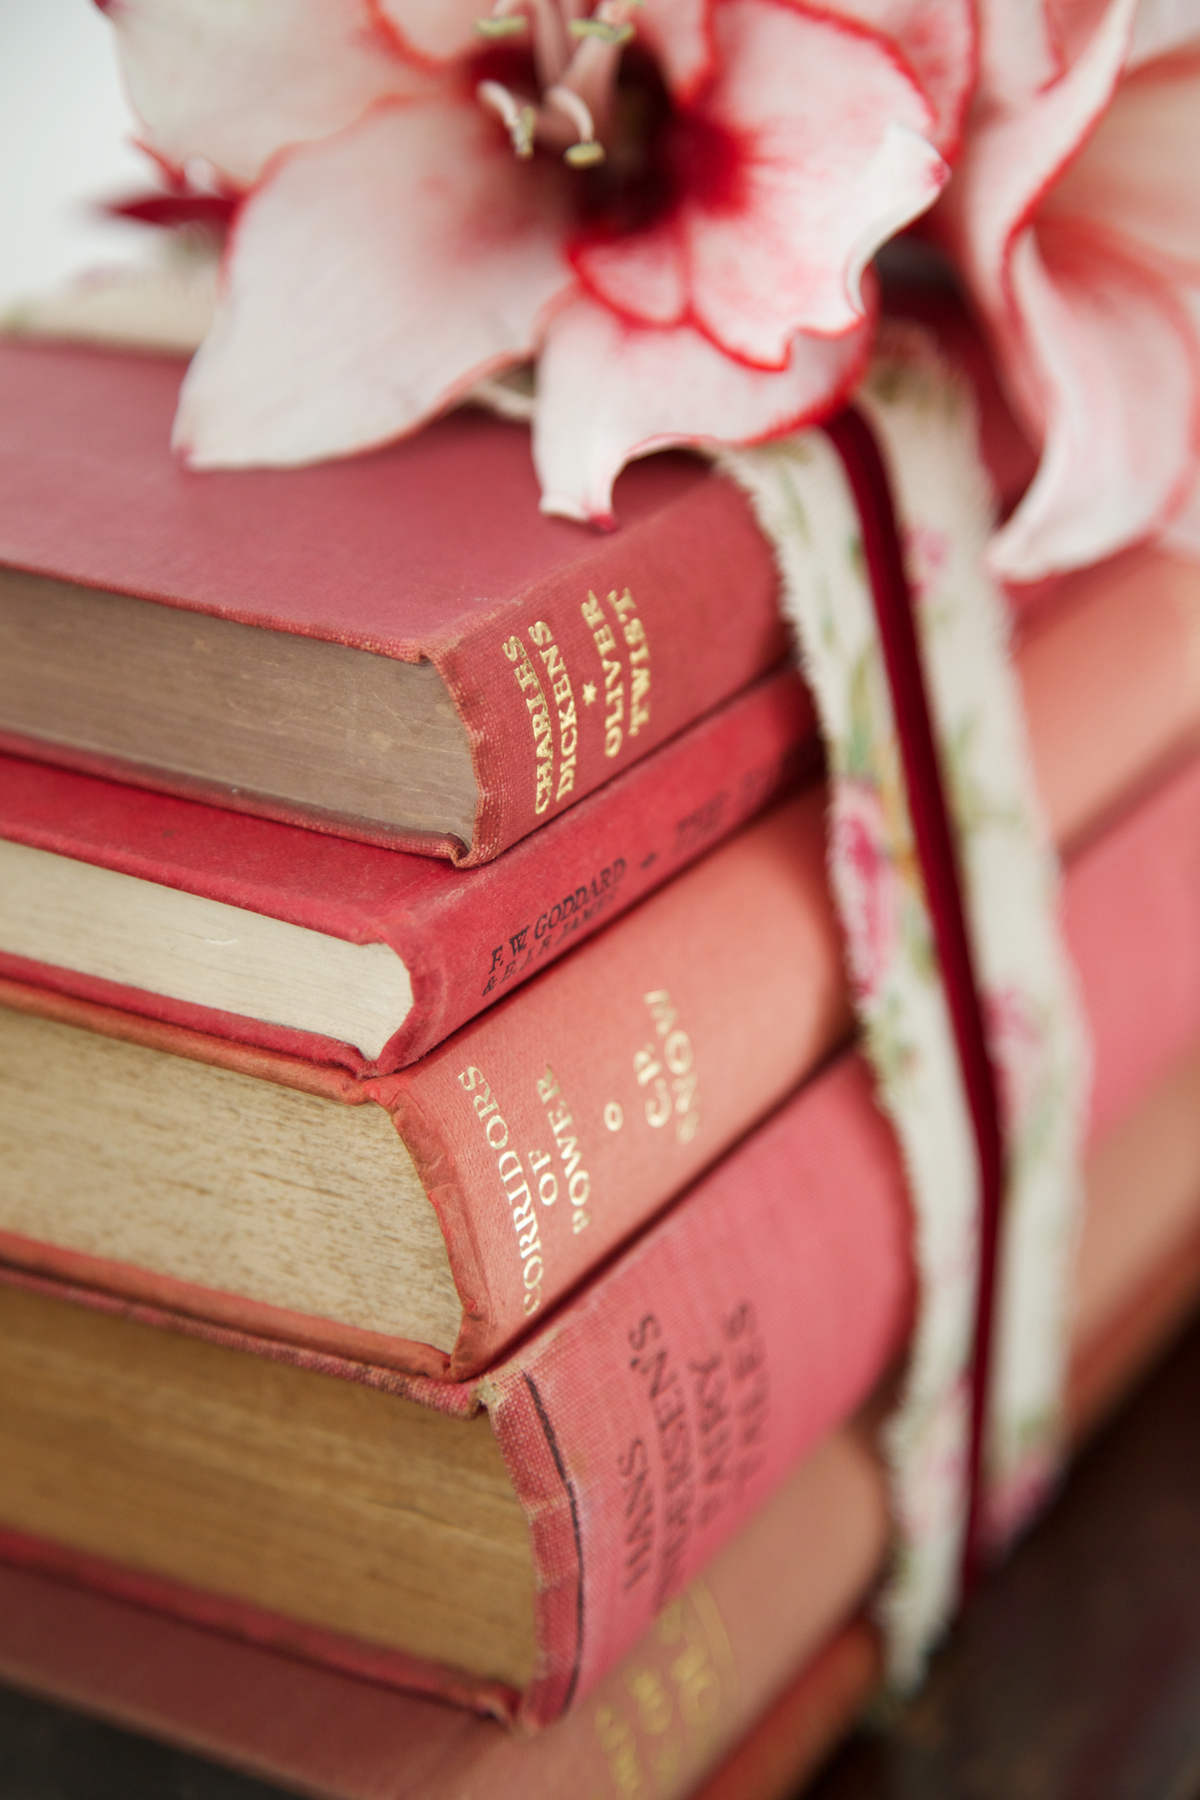 Vintage books by colour with ribbon 4.jpg